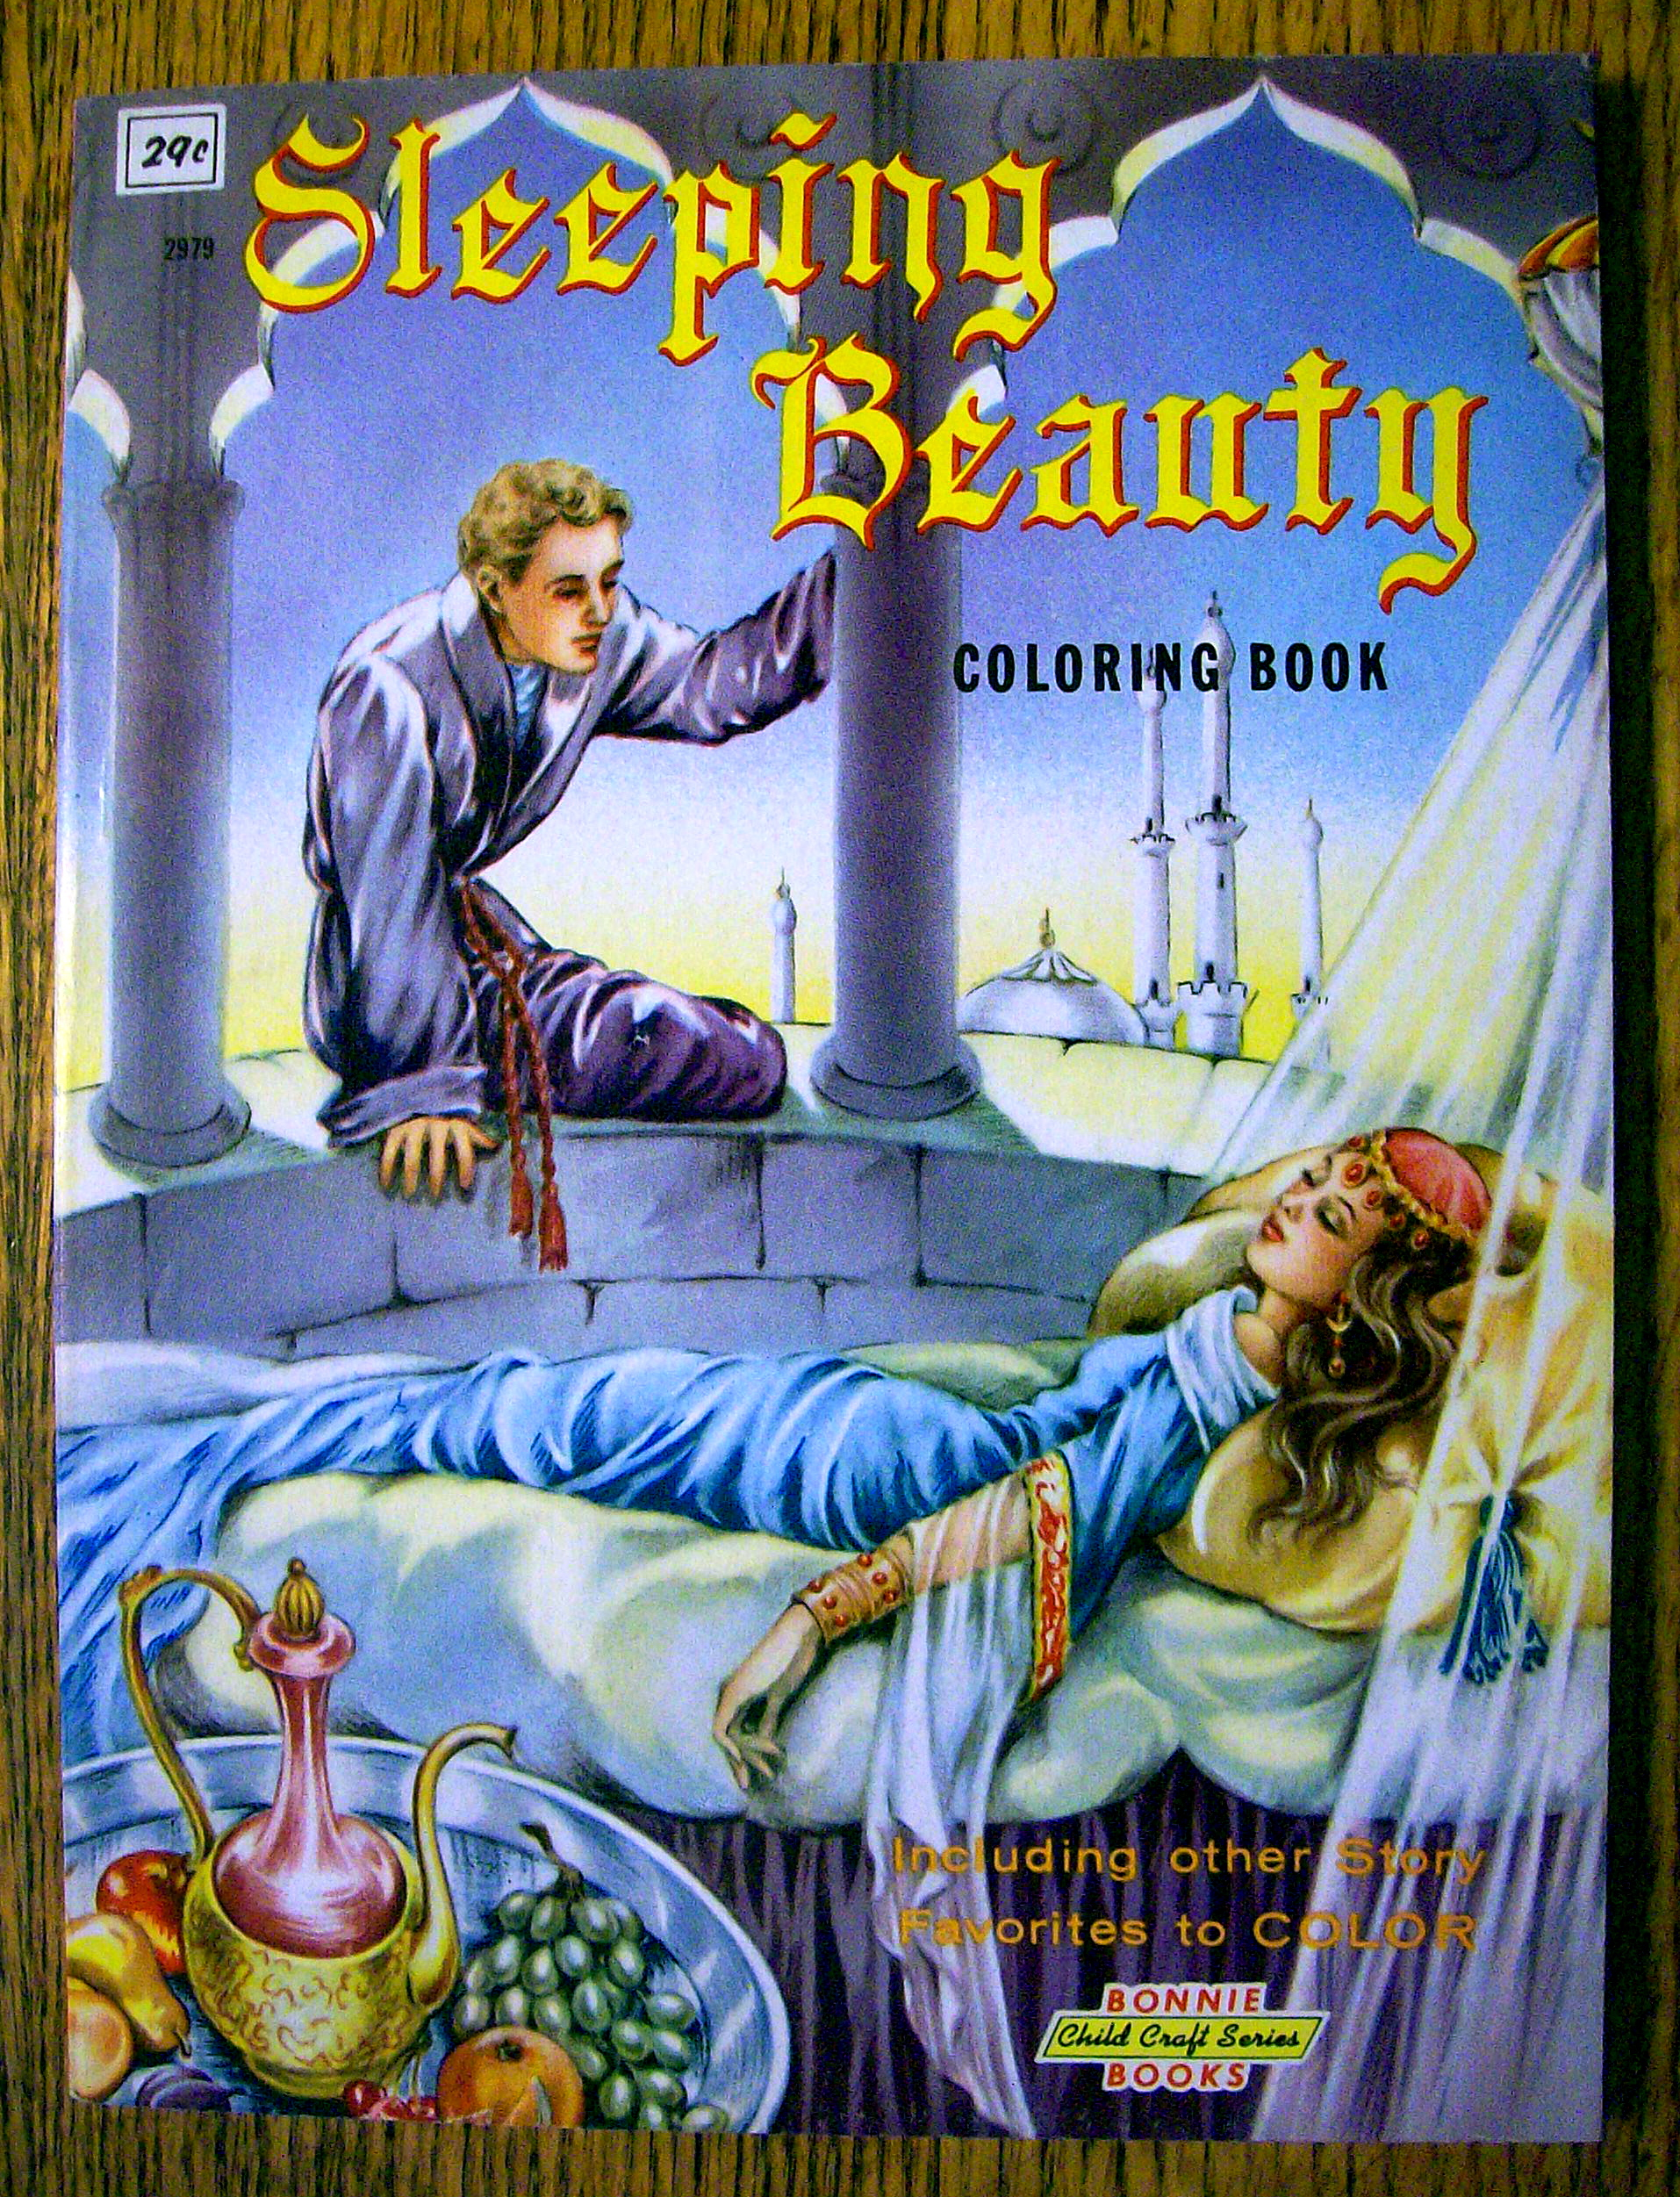 Sleeping Beauty Coloring Book 1960\'s (Bonnie Books) (Coloring Books ...